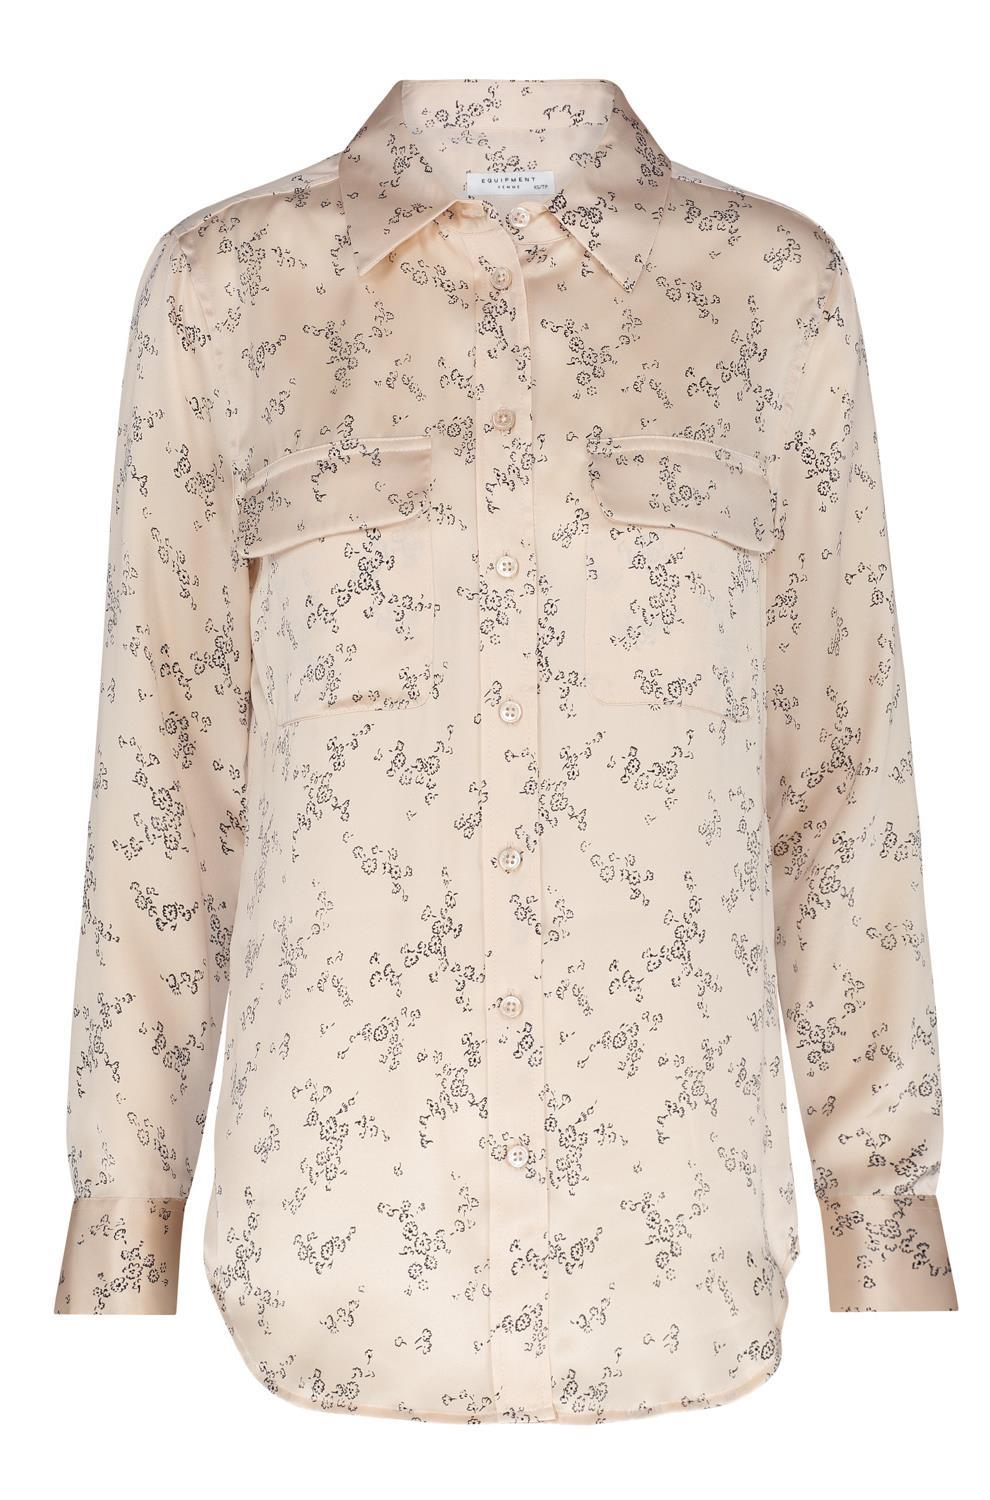 b96eeb4ee2ddc Equipment Slim Signature Shirt In French Nude Floral in Natural - Lyst